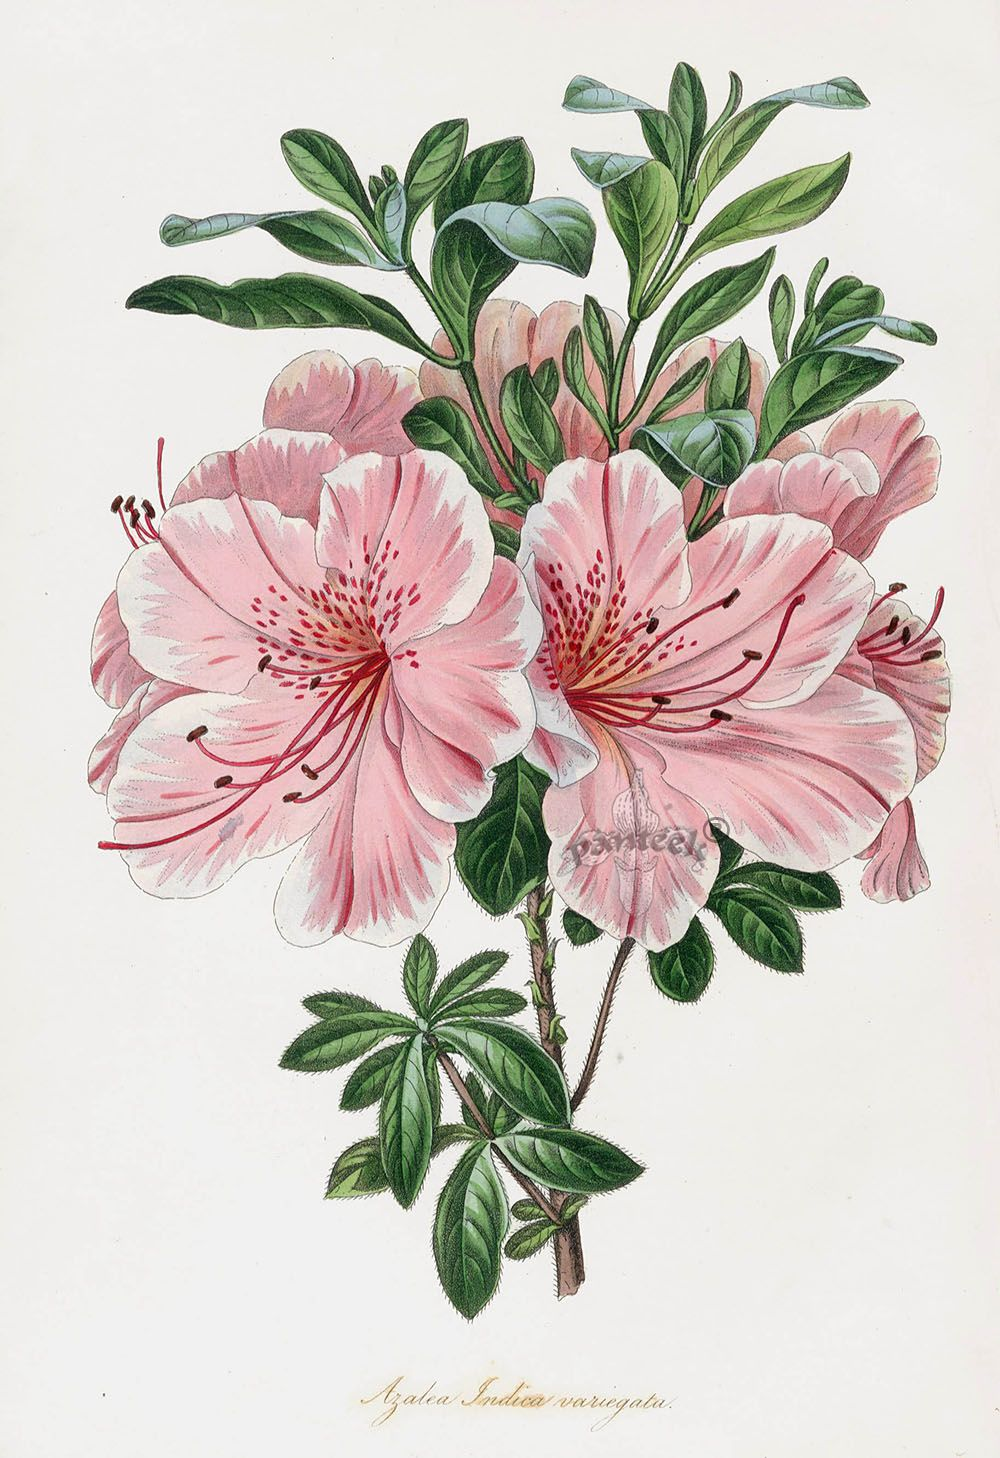 Rhododendron Flower Drawing at GetDrawings.com | Free for ...